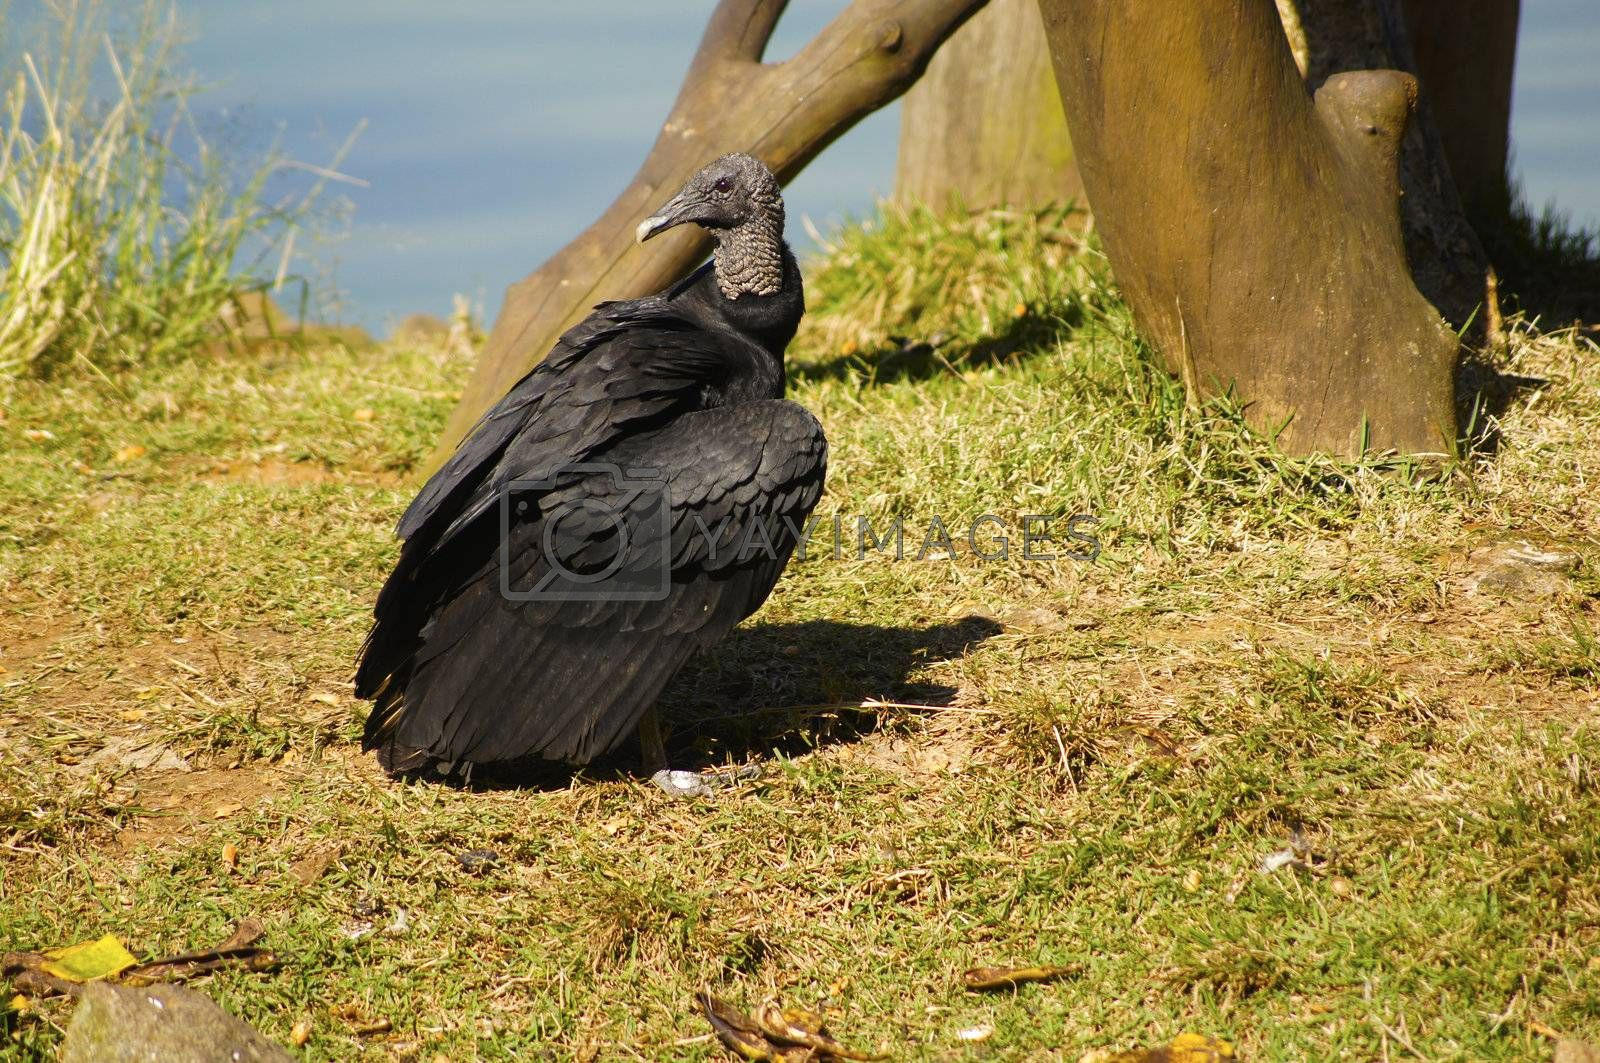 Common bird found in various parts of the world that has the purpose of eating the remains of dead animals